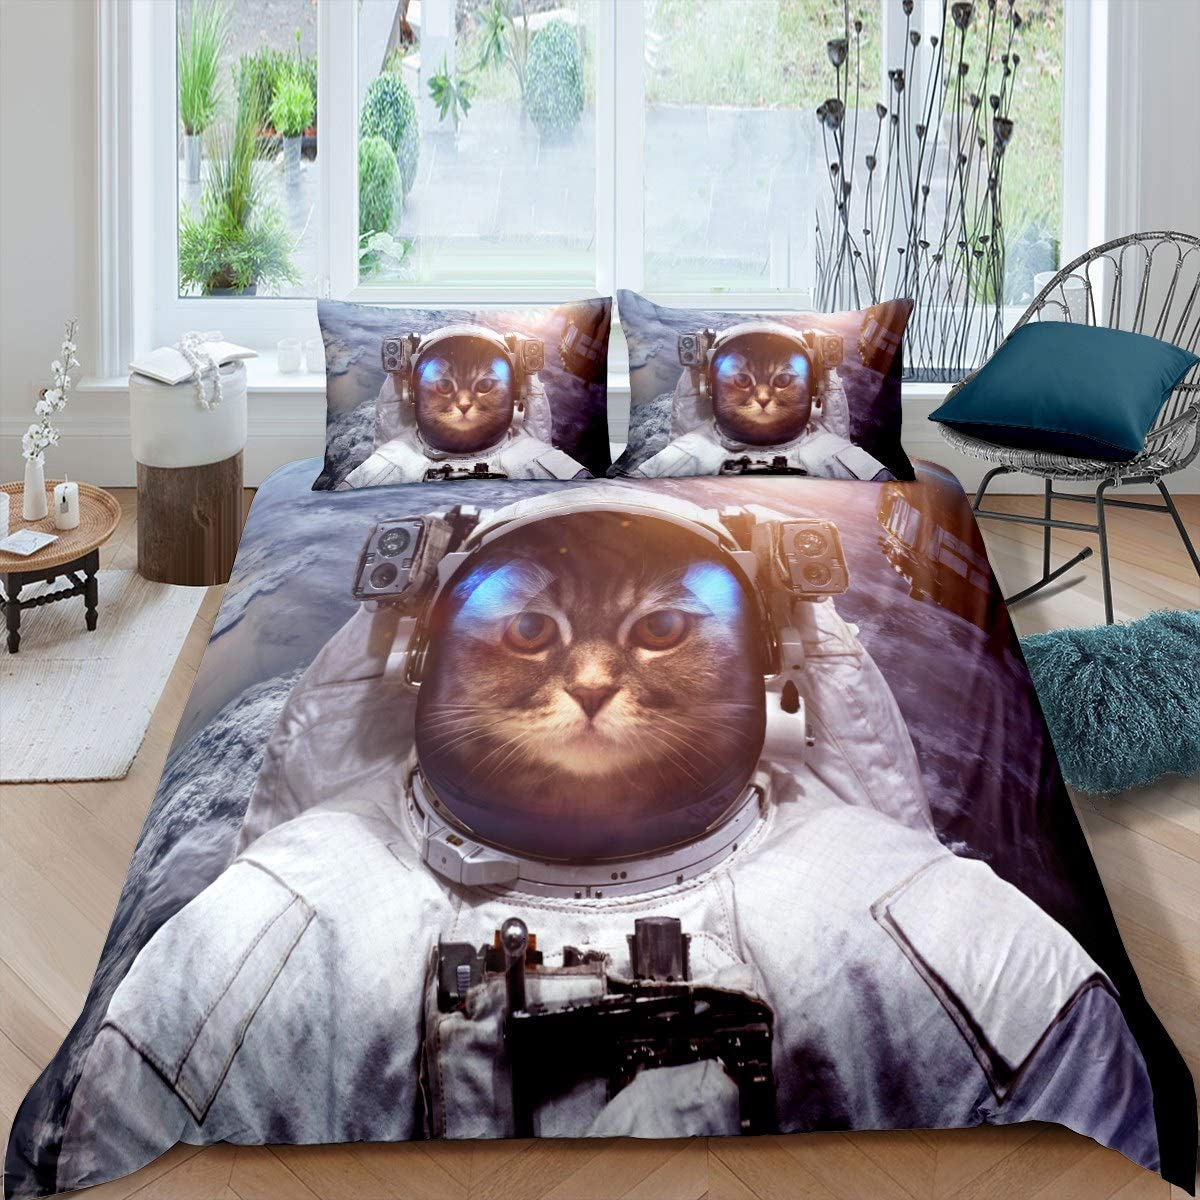 Duvet Cover 売れ筋ランキング Set Full Size 流行 Space Outer Cat 3D Sma Aerospace